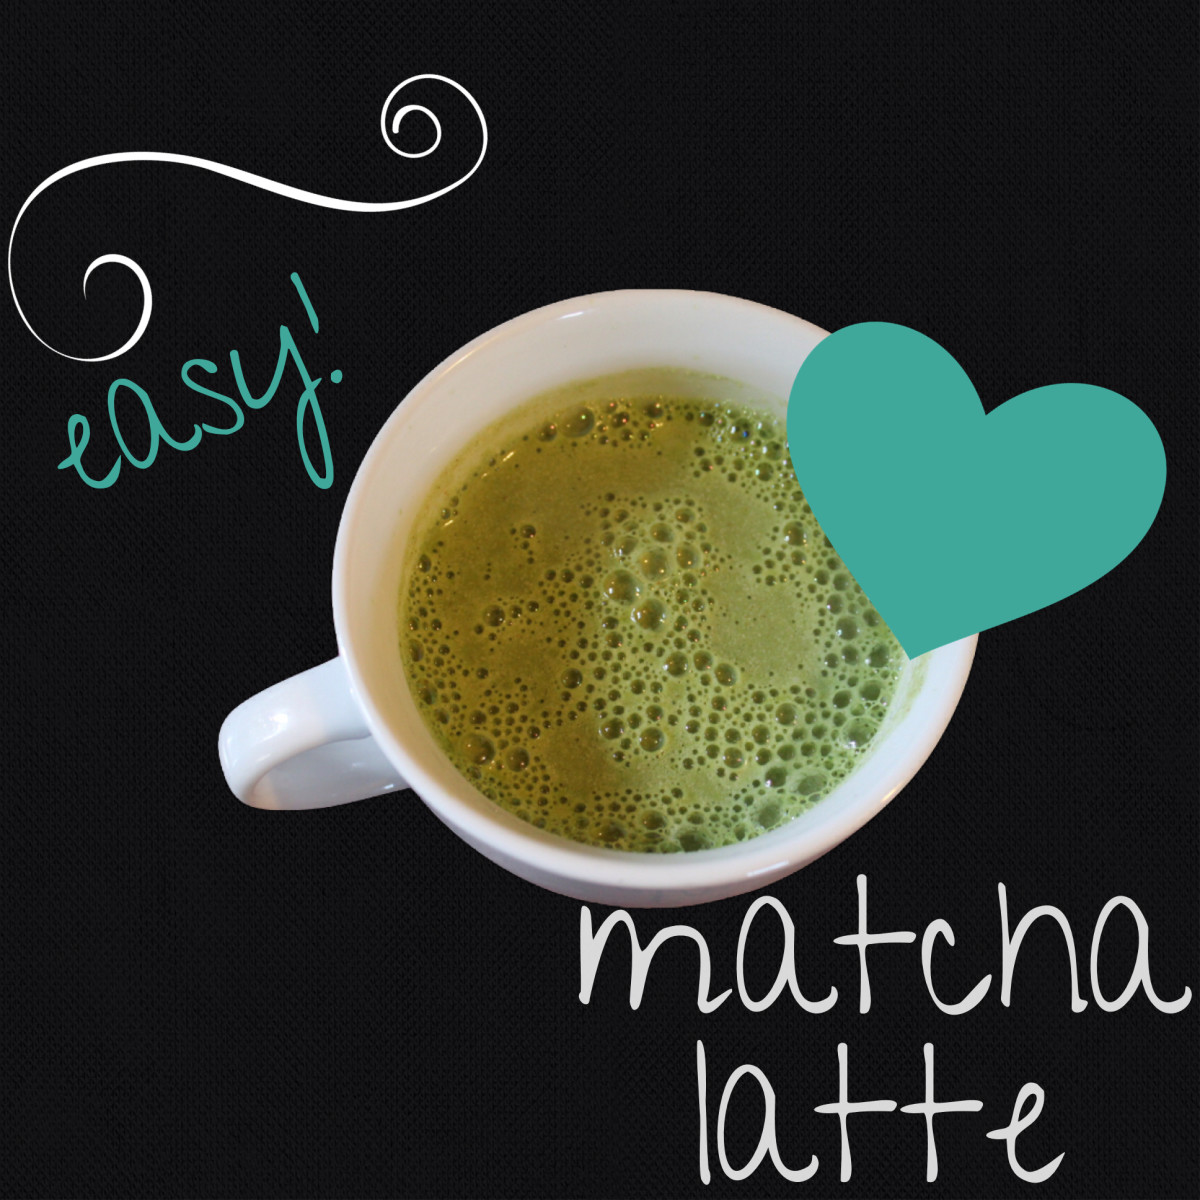 All you need is matcha, water, milk and sweetener - then just whip it!